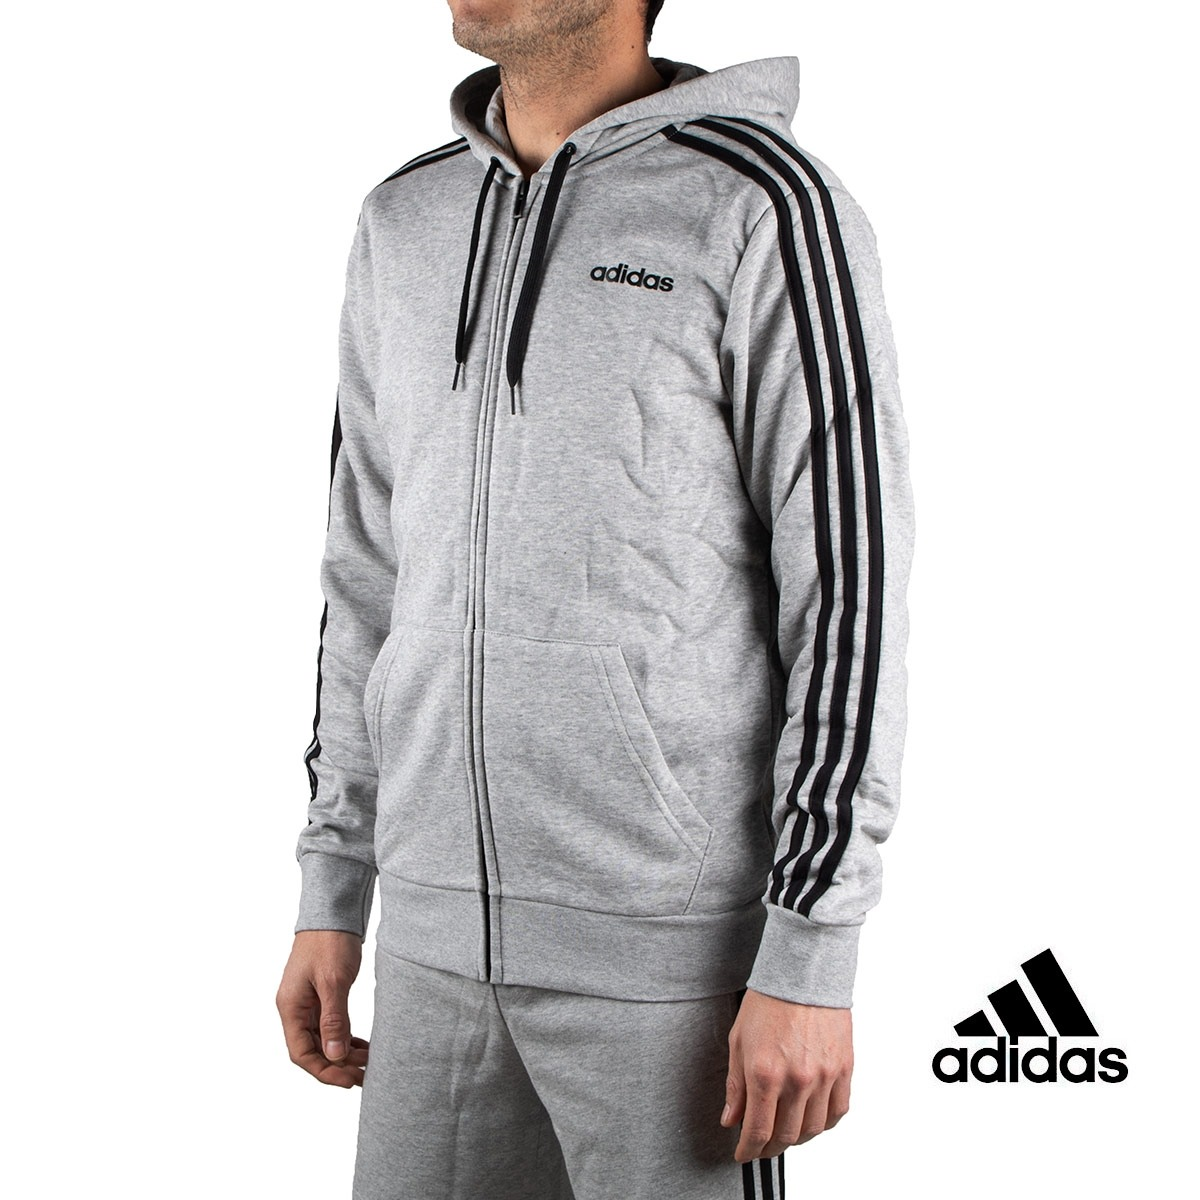 Adidas sudadera Essentials 3 Stripes Fullzip French Terry Gris hombre